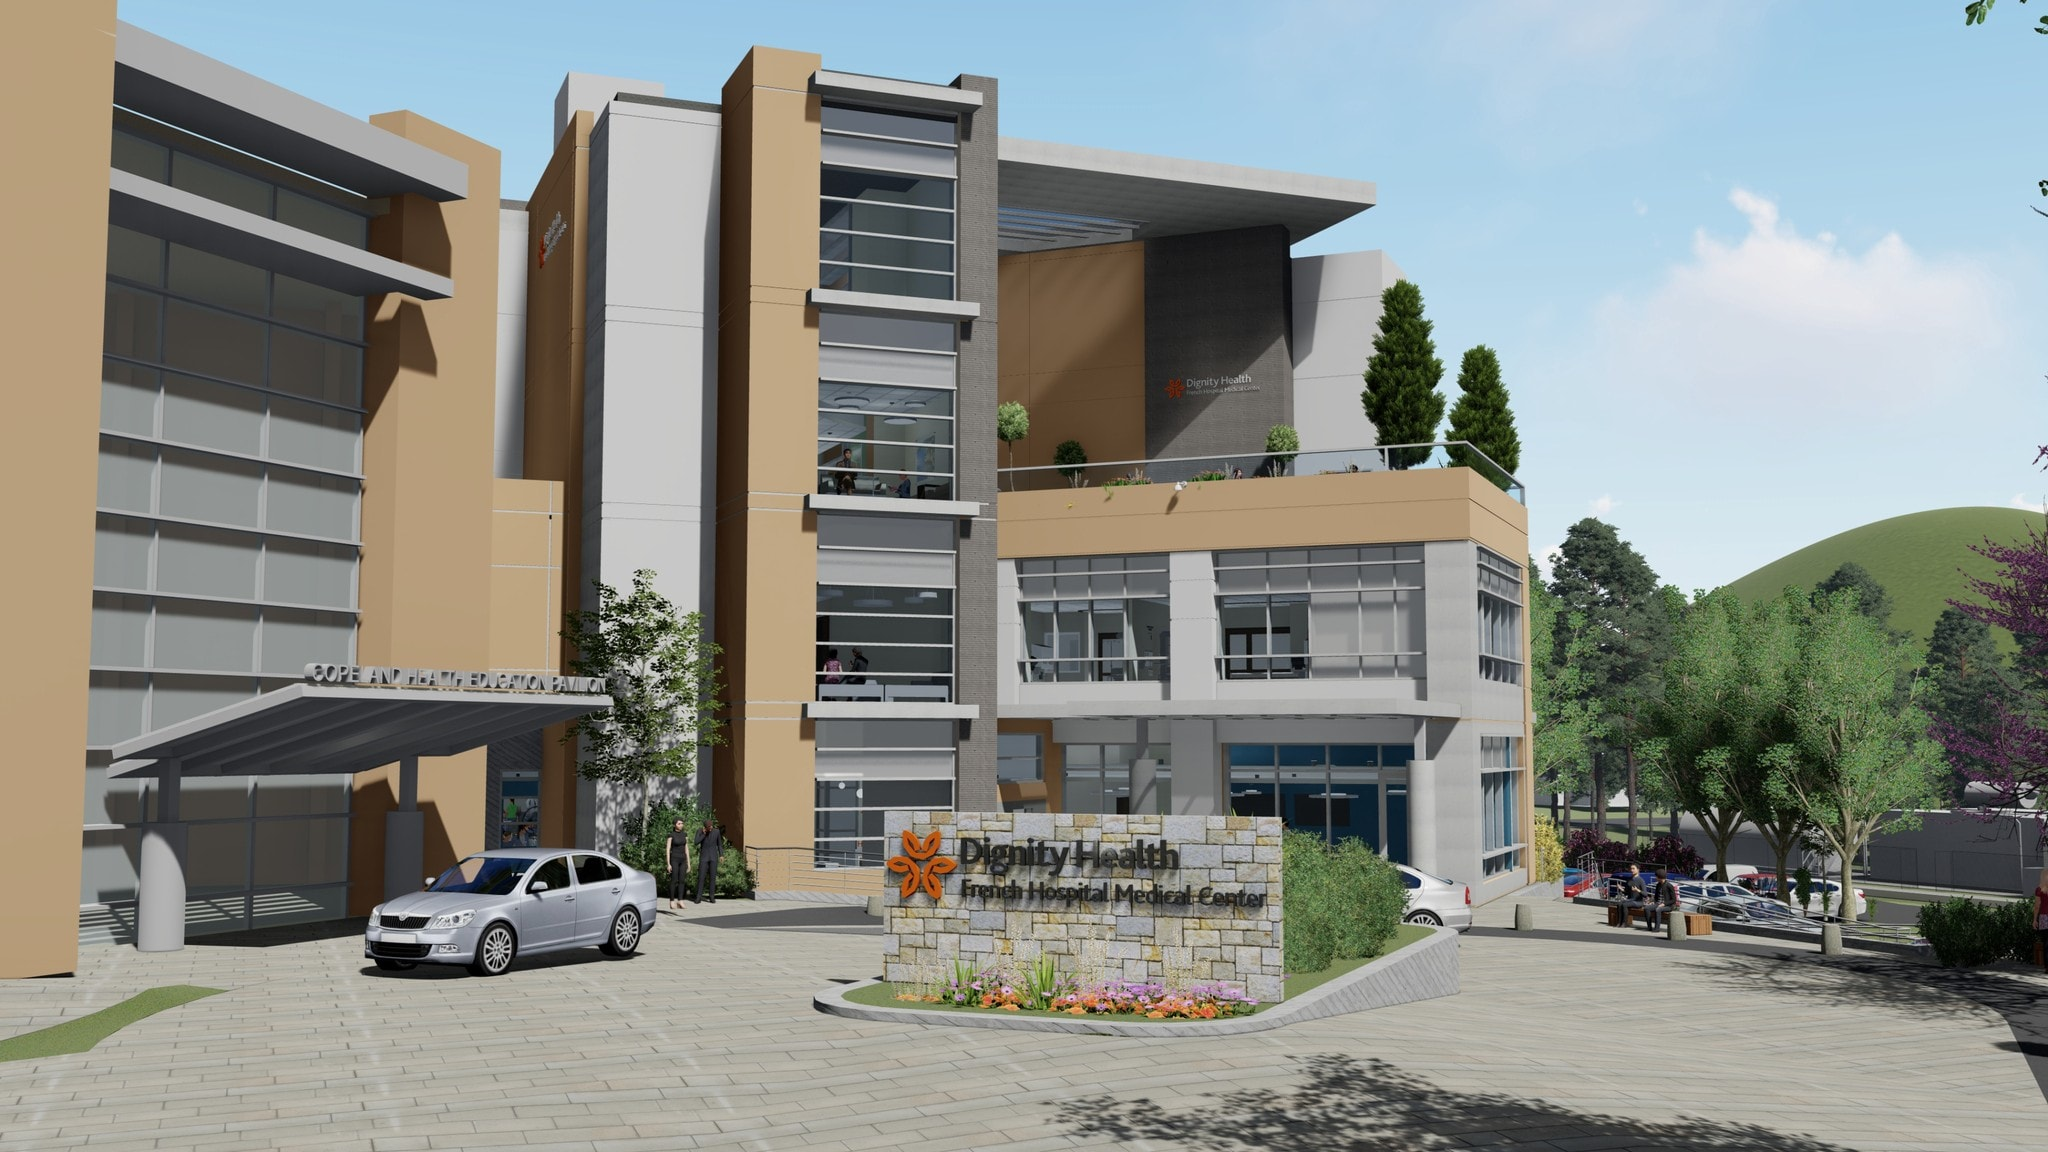 Your New French Hospital rendering